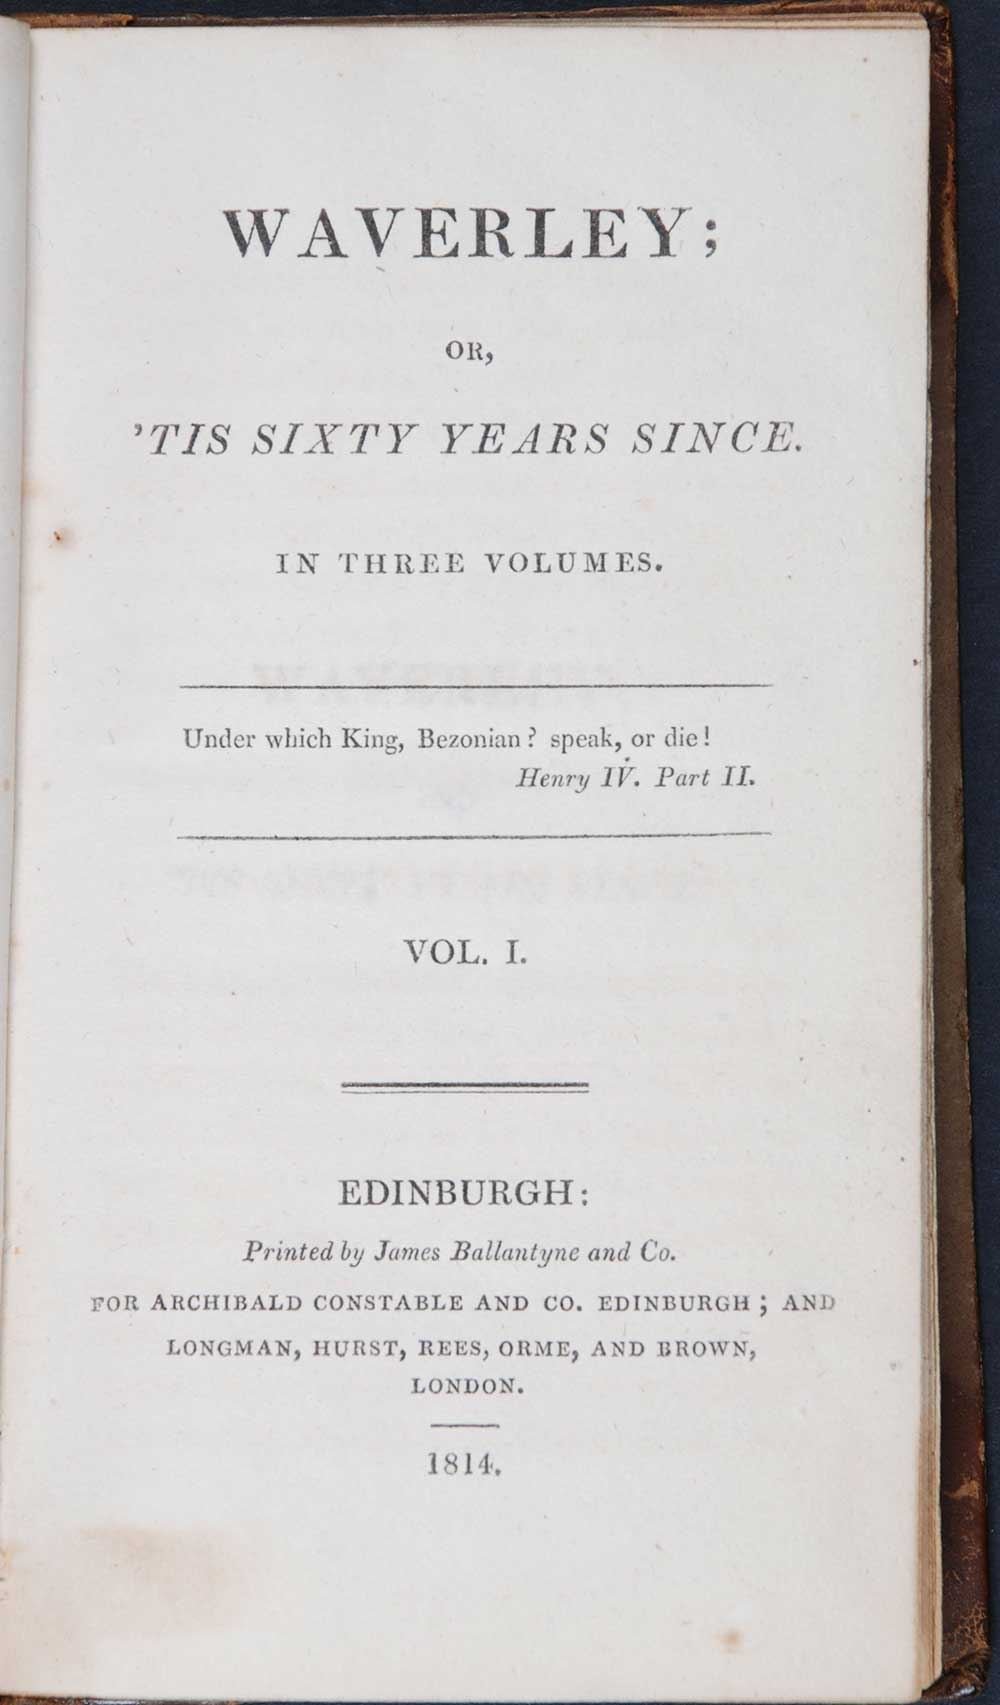 [Sir Walter Scott]. <em>Waverley, or, 'Tis sixty years since.</em> [1st edition]. Edinburgh: Printed by James Ballantyne and Co. for Archibald Constable and Co., Edinburgh; and Longman, Hurst, Rees, Orme, and Brown, London, 1814. Three volumes; Vol. 1 displayed.